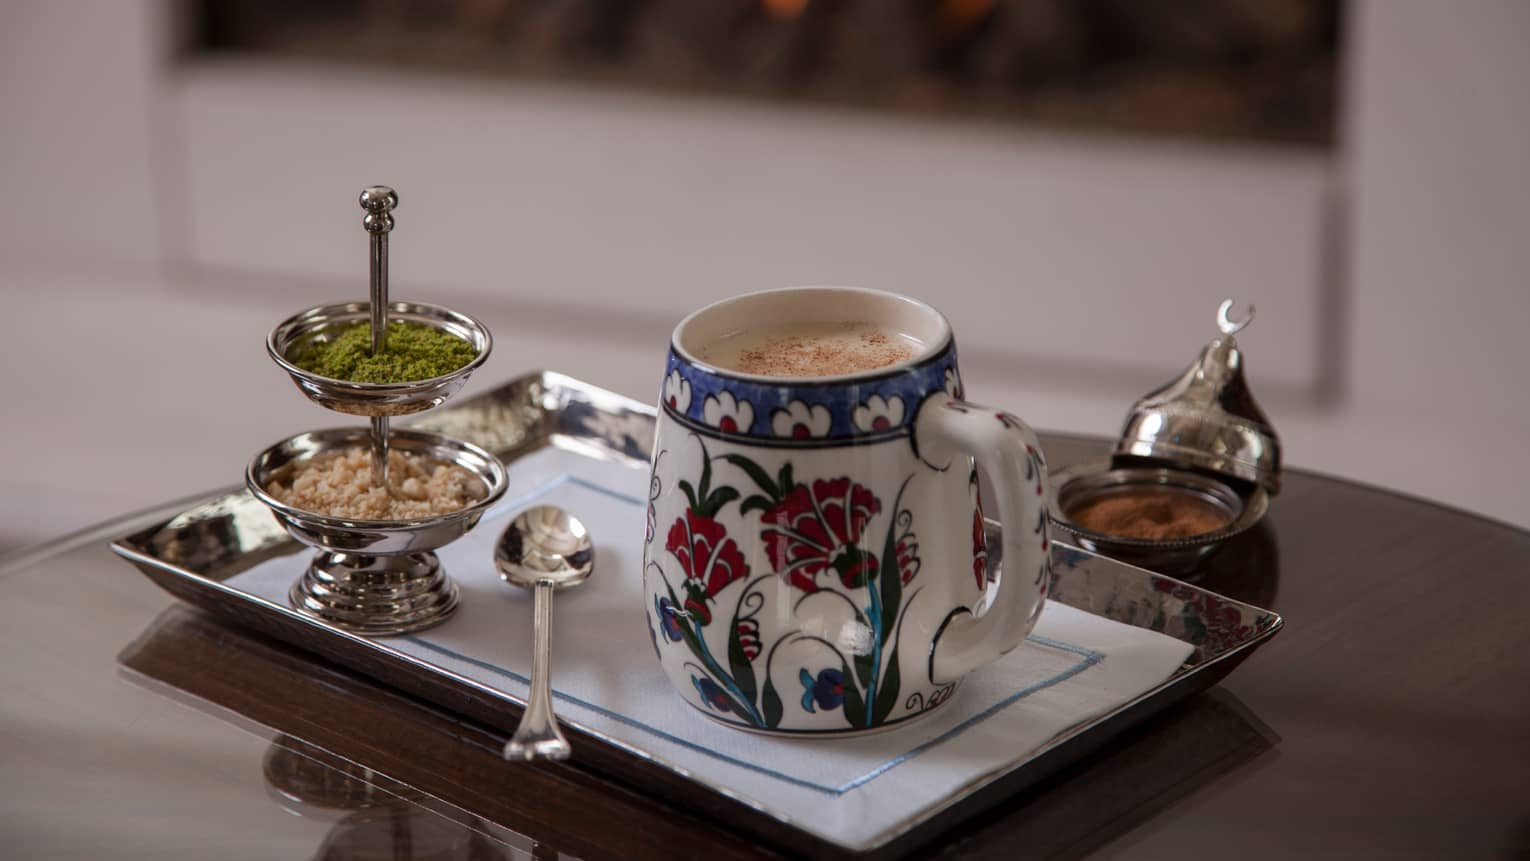 Frothed hot drink in decorative cup on tray with silver garnish dish, spoon